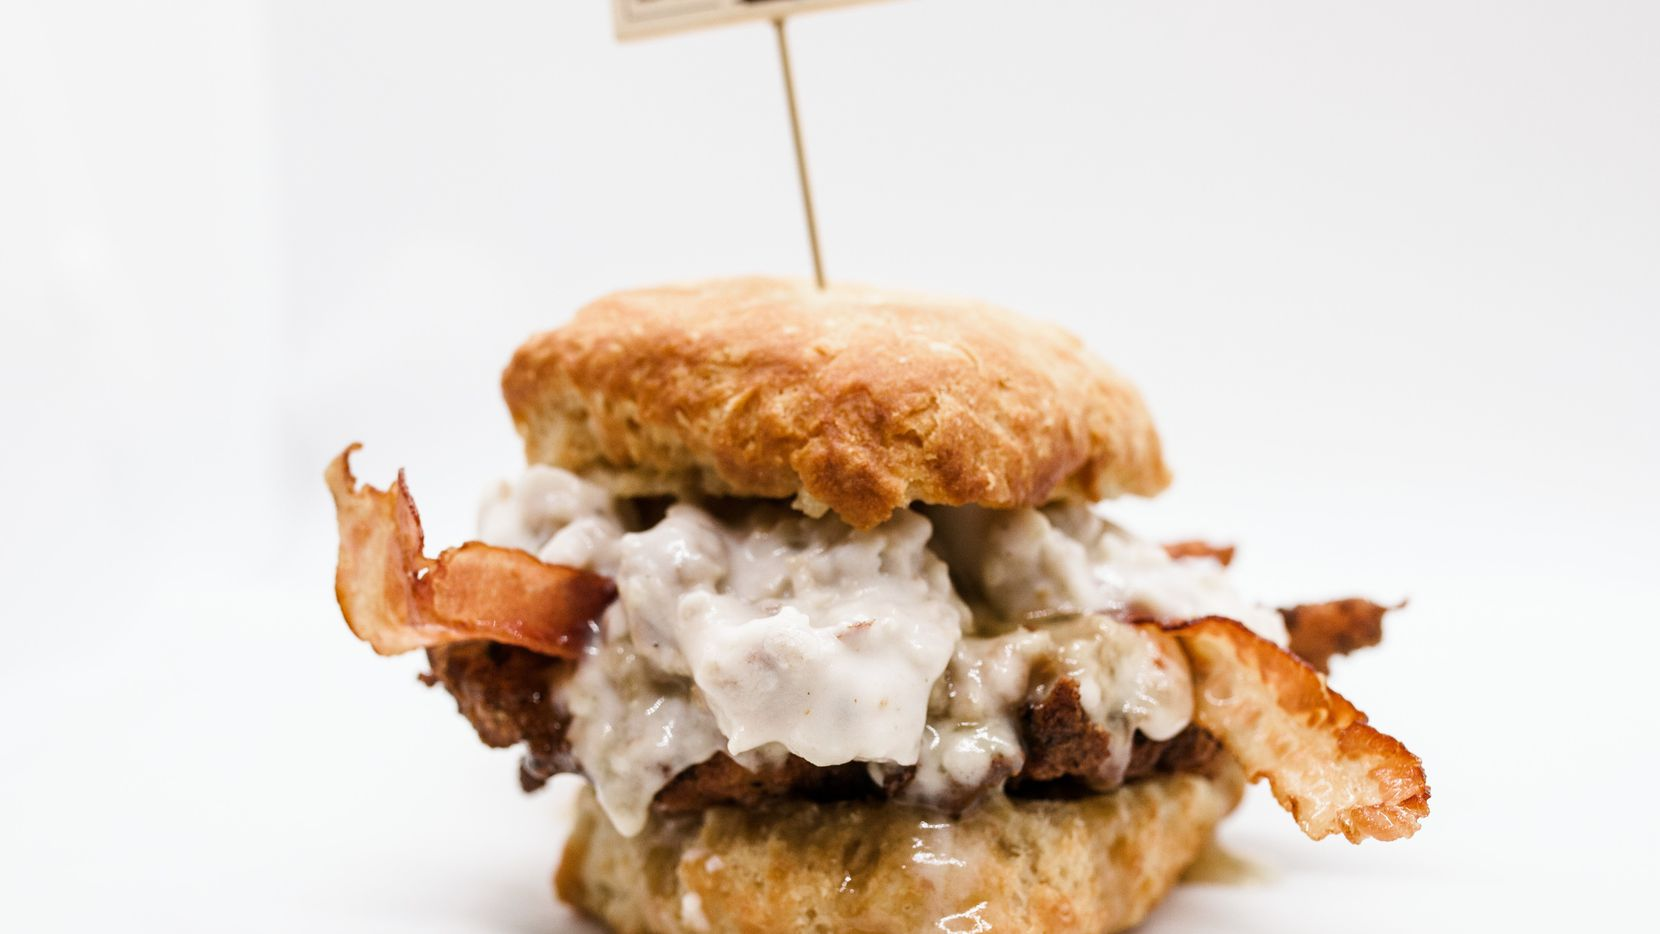 The Biscuit Bar will expand to five new storefronts in Texas by early 2020.